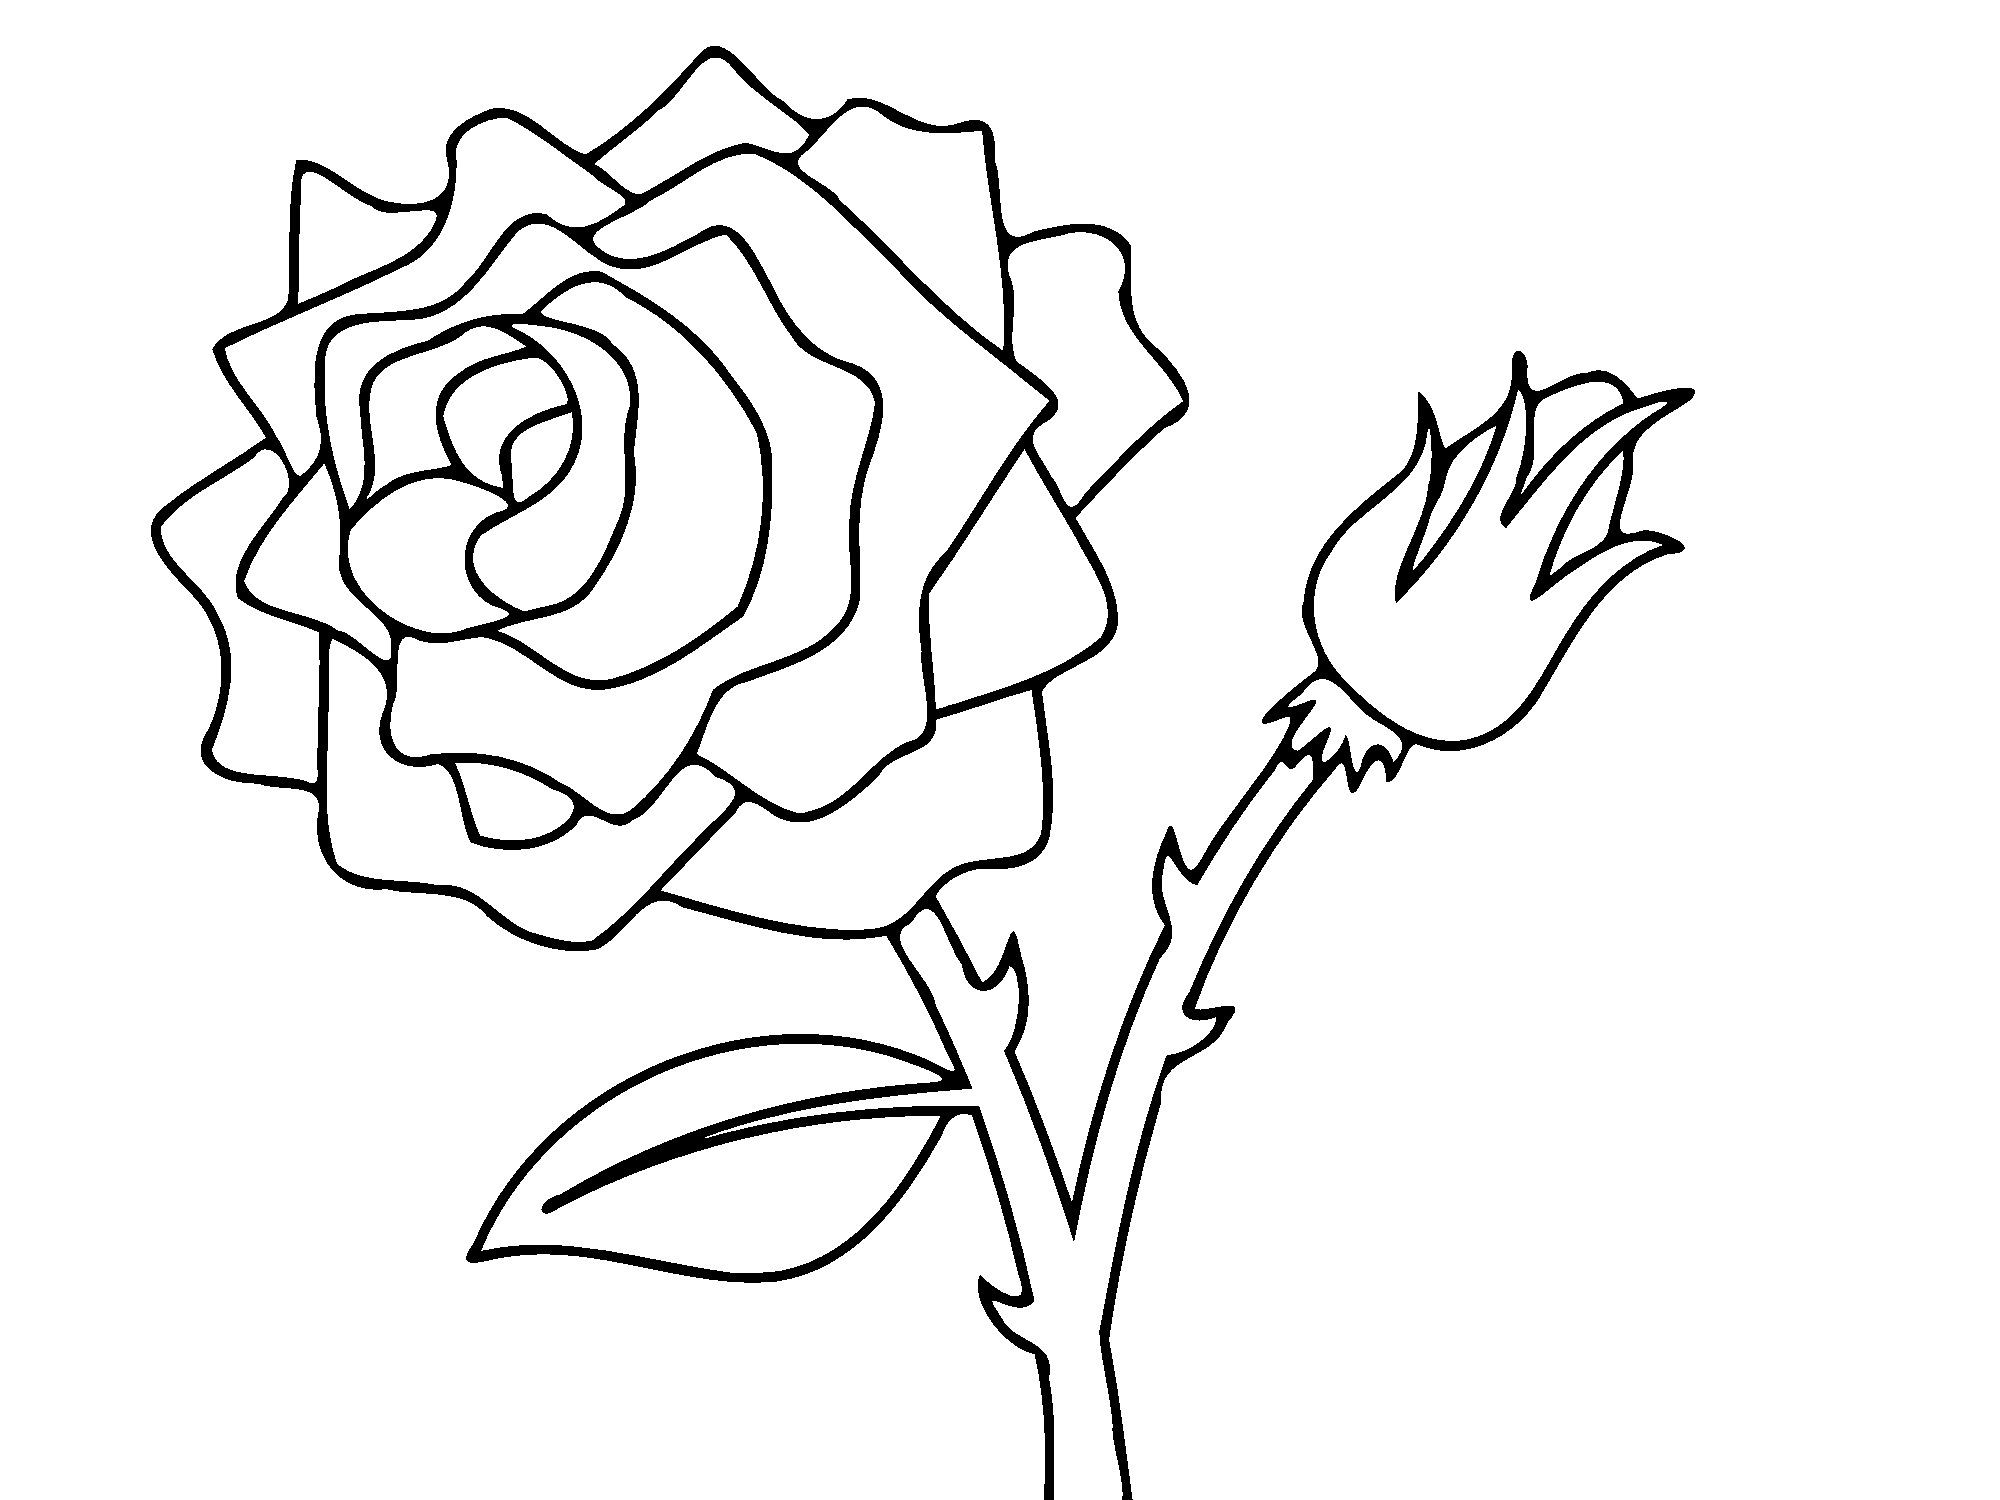 roses coloring pages printable free printable roses coloring pages for kids printable roses pages coloring